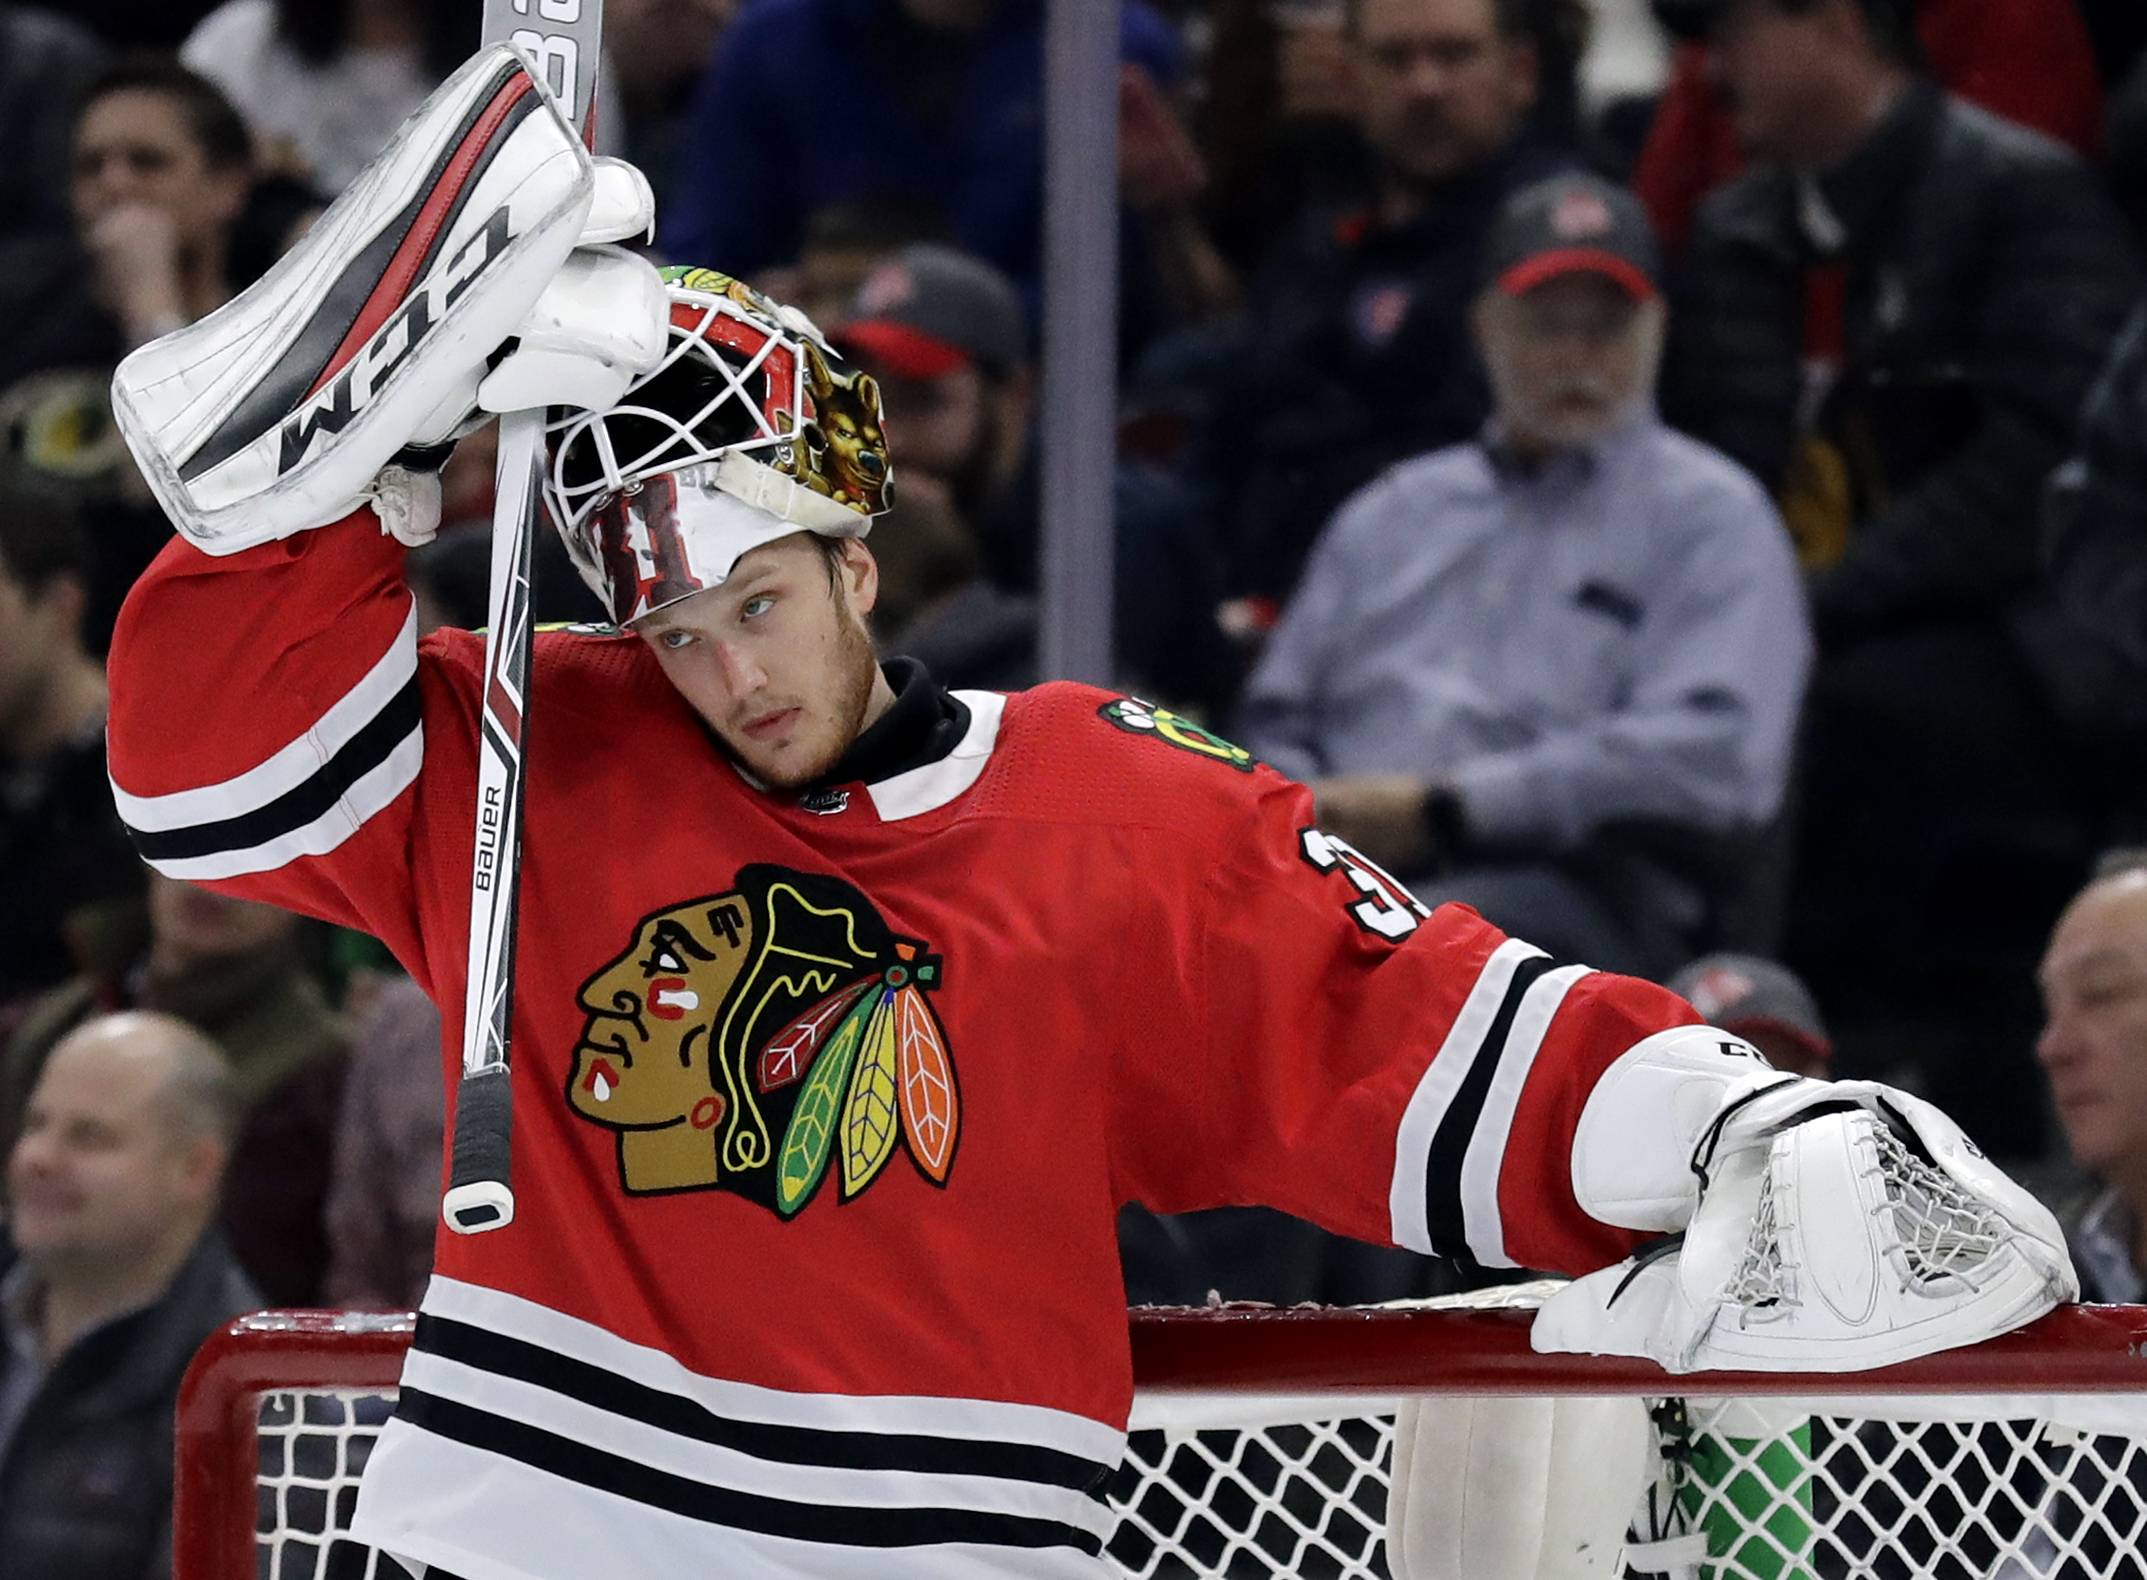 It's time for Anton Forsberg to show what he can do in net on a consistent basis for the Chicago Blackhawks. In Wednesday's 3-2 shootout victory over Ottawa at the United Center. Forsberg stopped 32 shots and 5 more in a shootout that lasted seven rounds